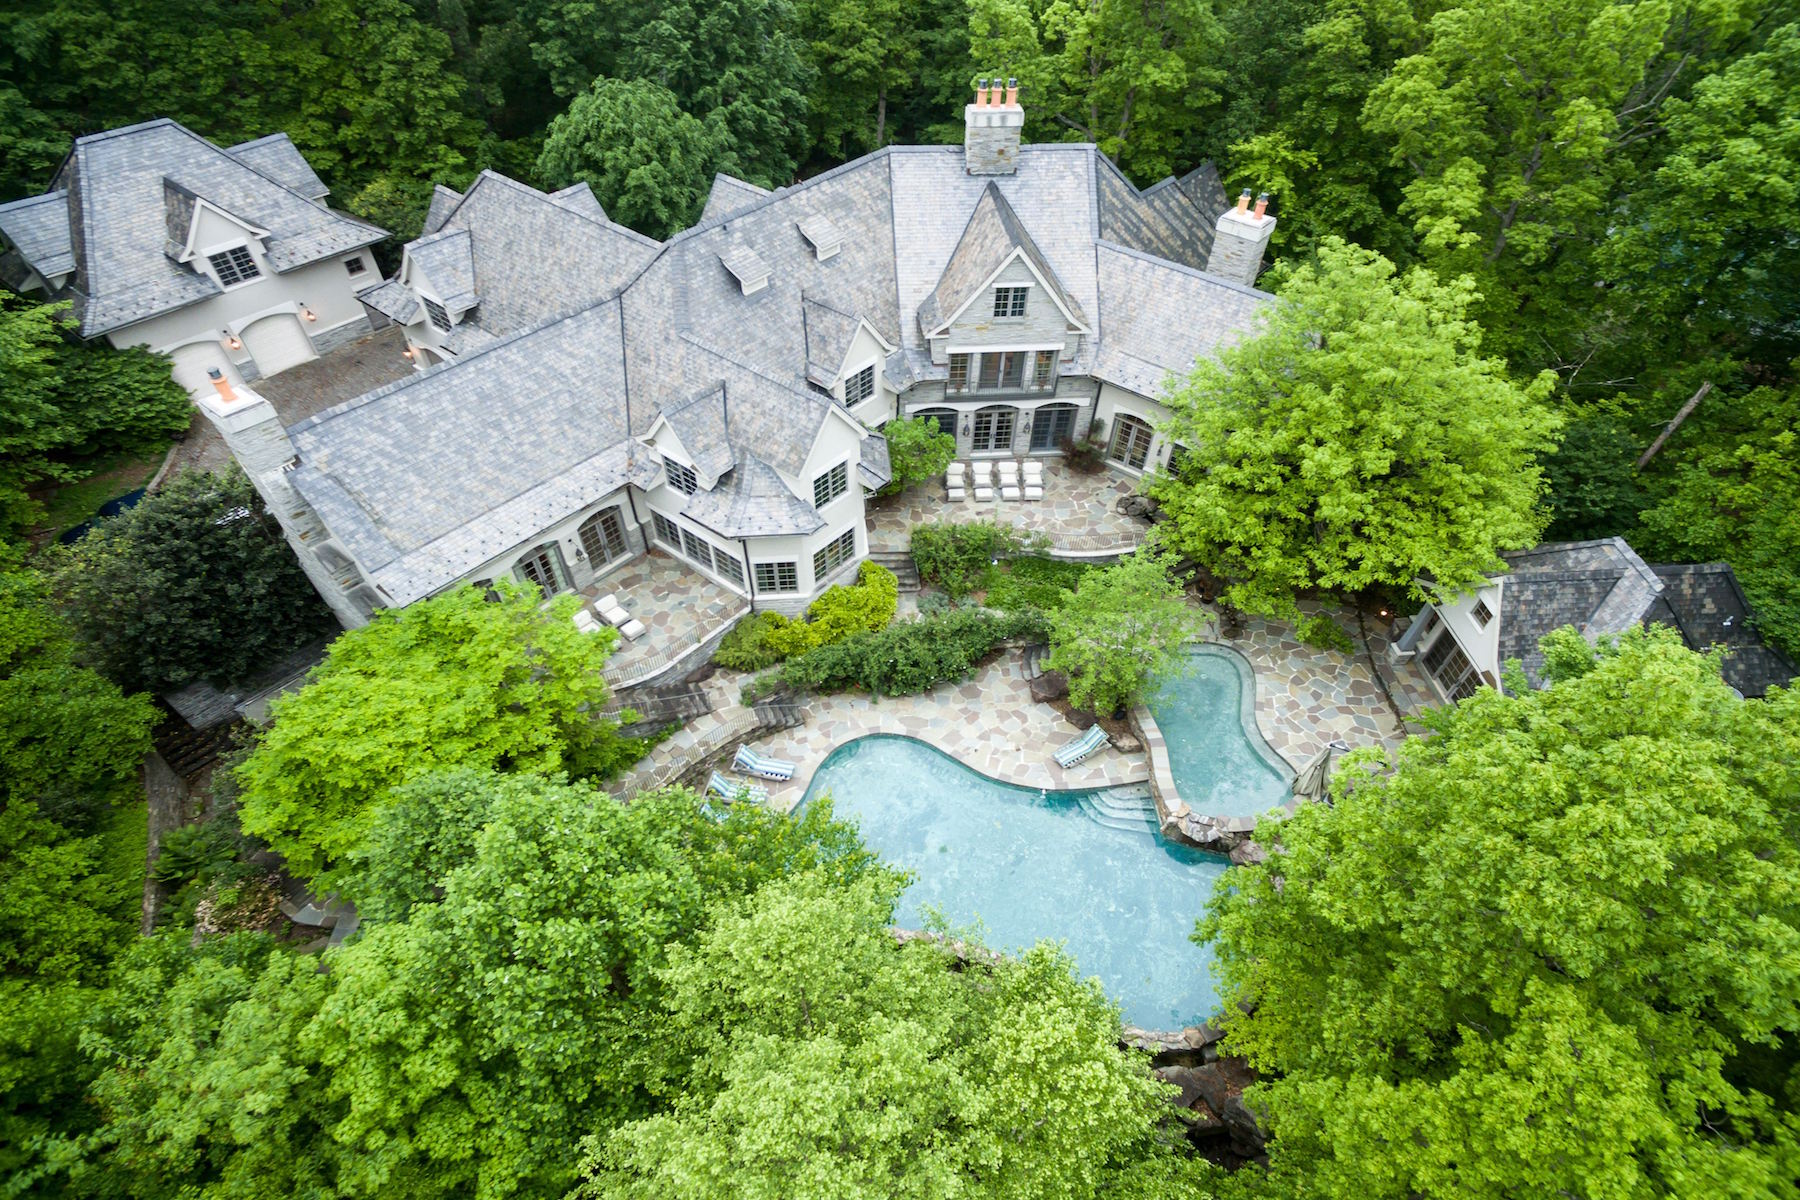 Single Family Home for Sale at The House That AOL Built 13768 Balmoral Greens Ave Clifton, Virginia 20124 United States